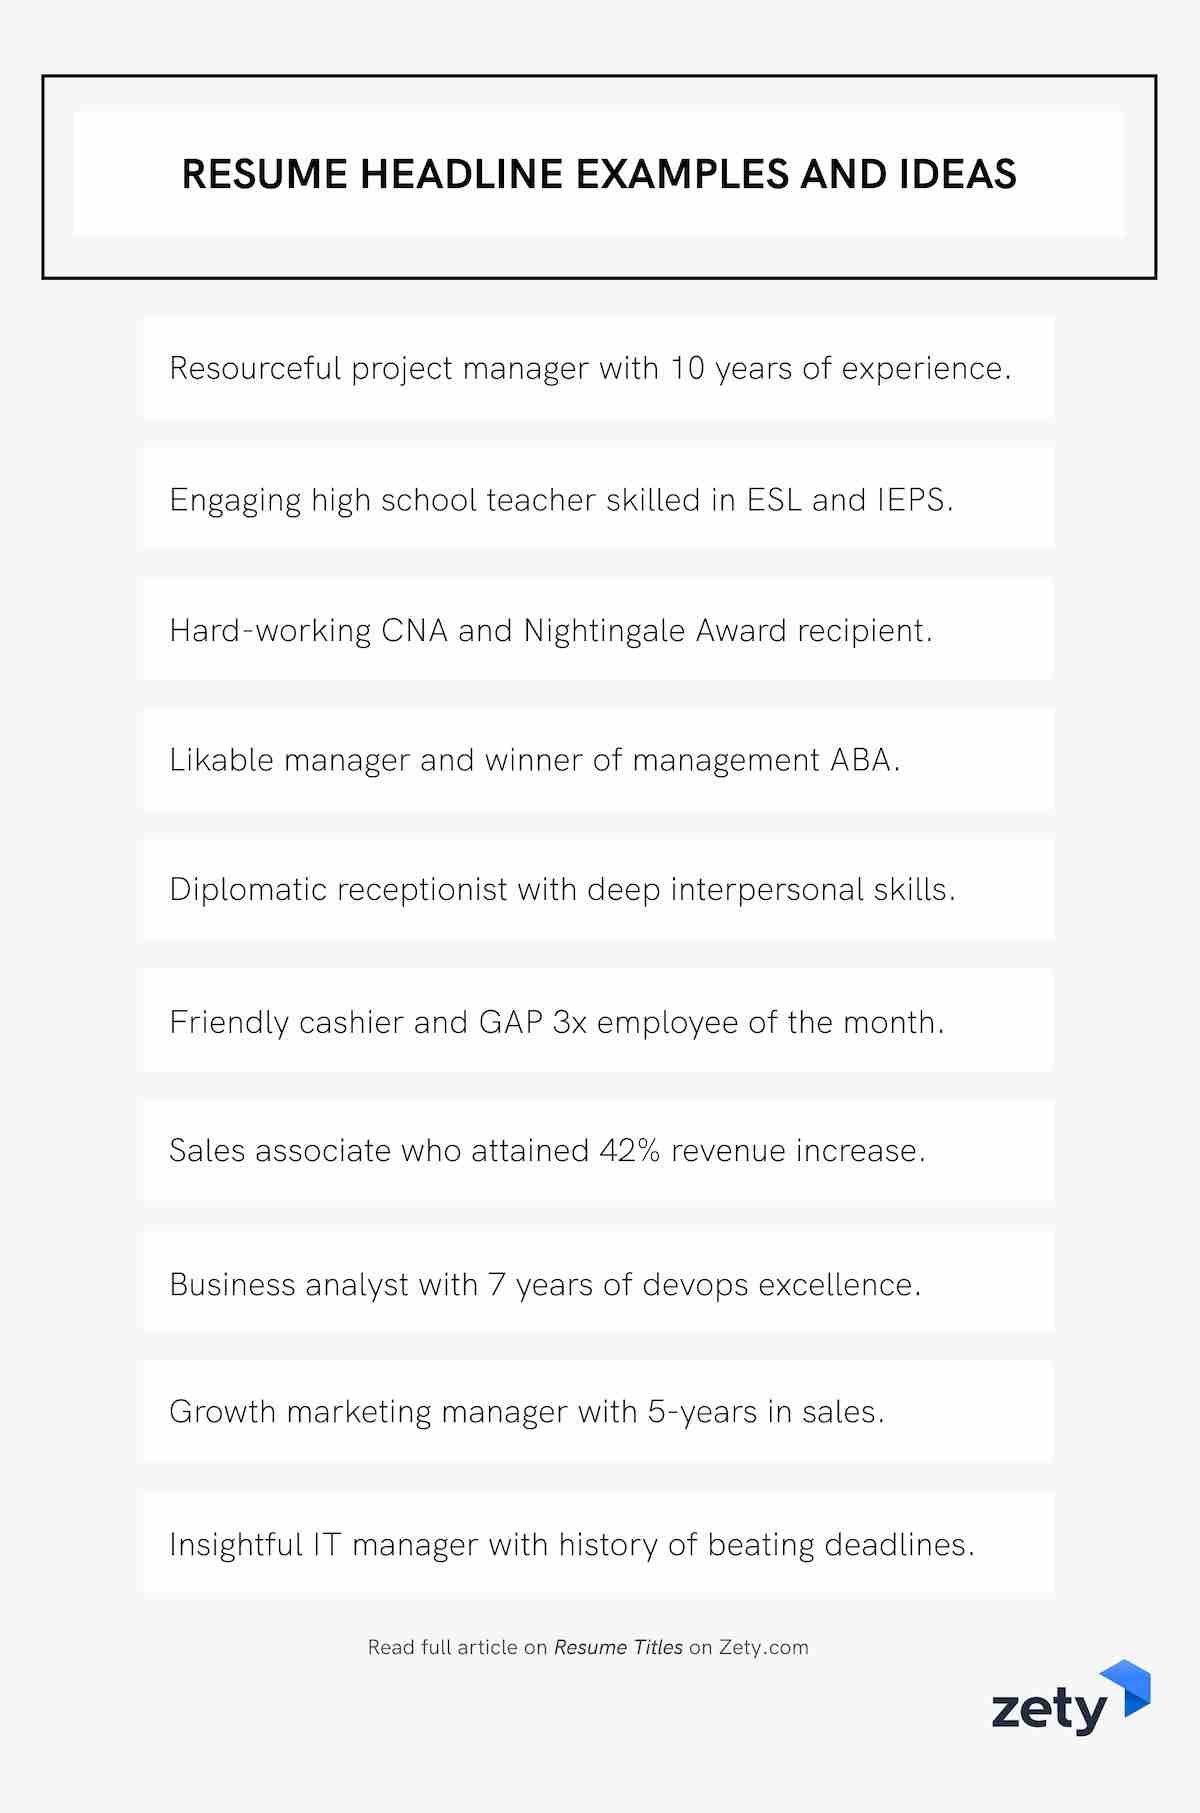 resume title examples good headline for any skills and ideas writing calgary stylist Resume Skills Title For Resume